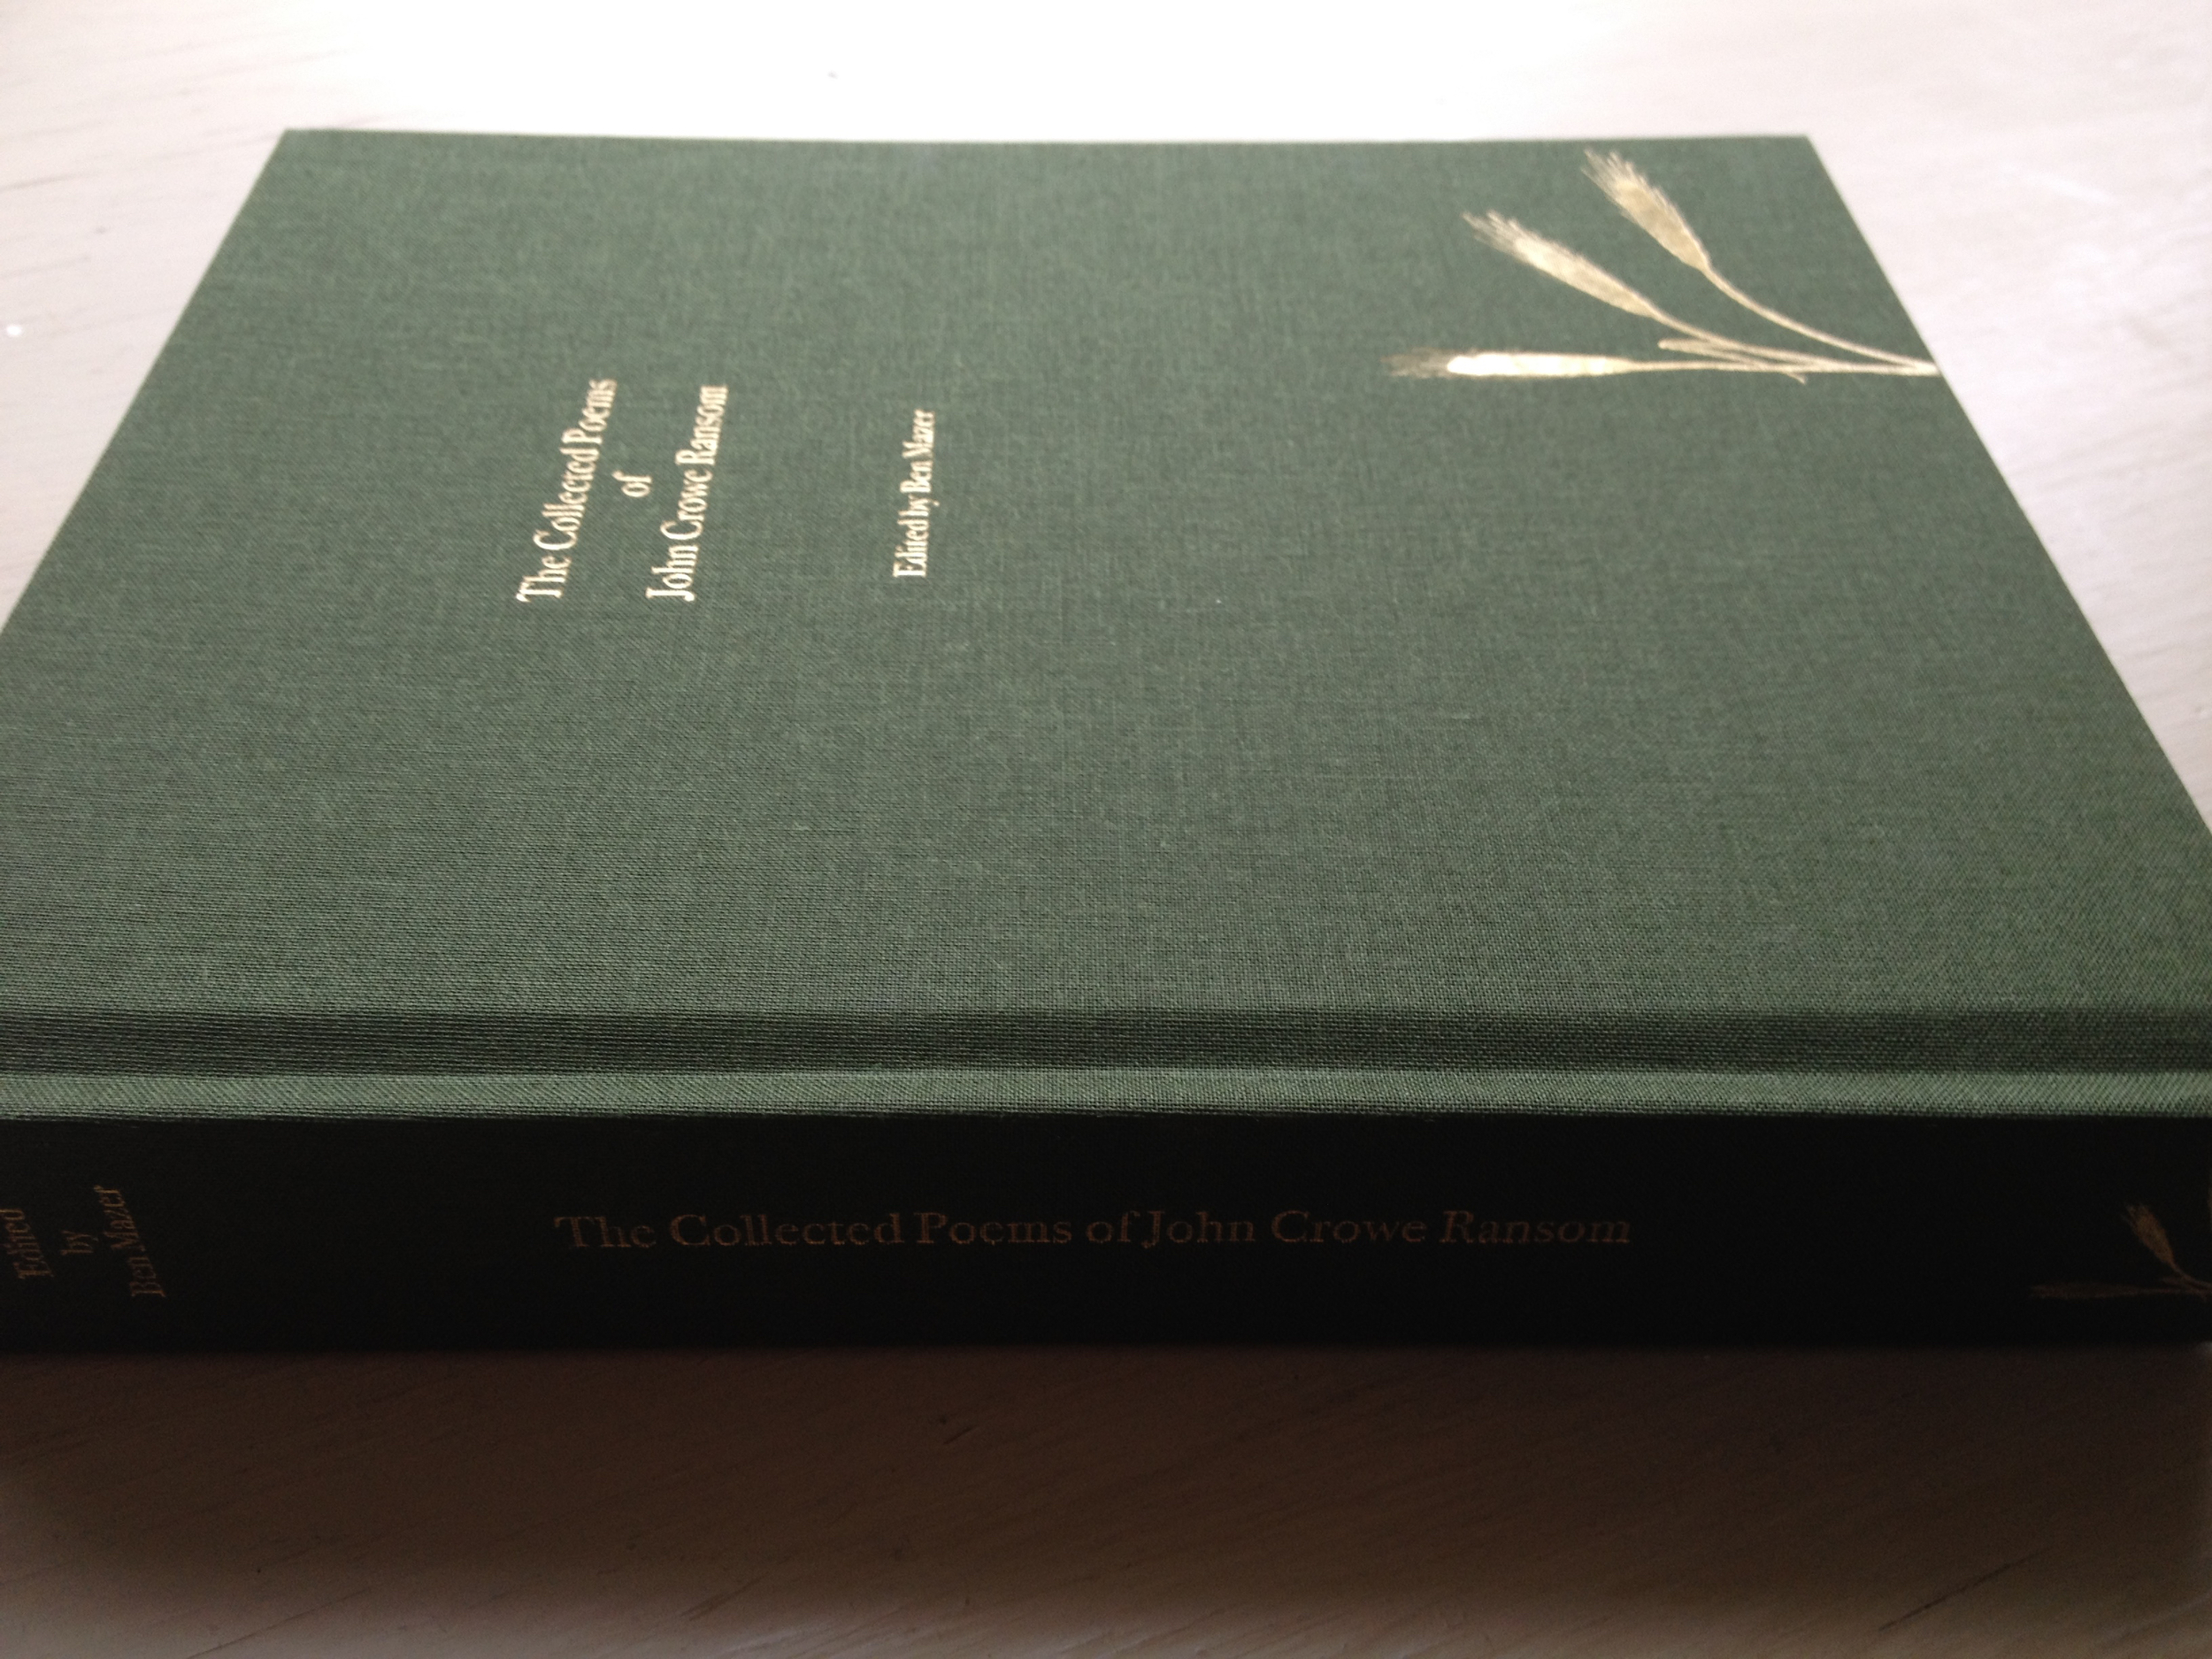 The Collected John Crowe Ransom - 17048.jpg